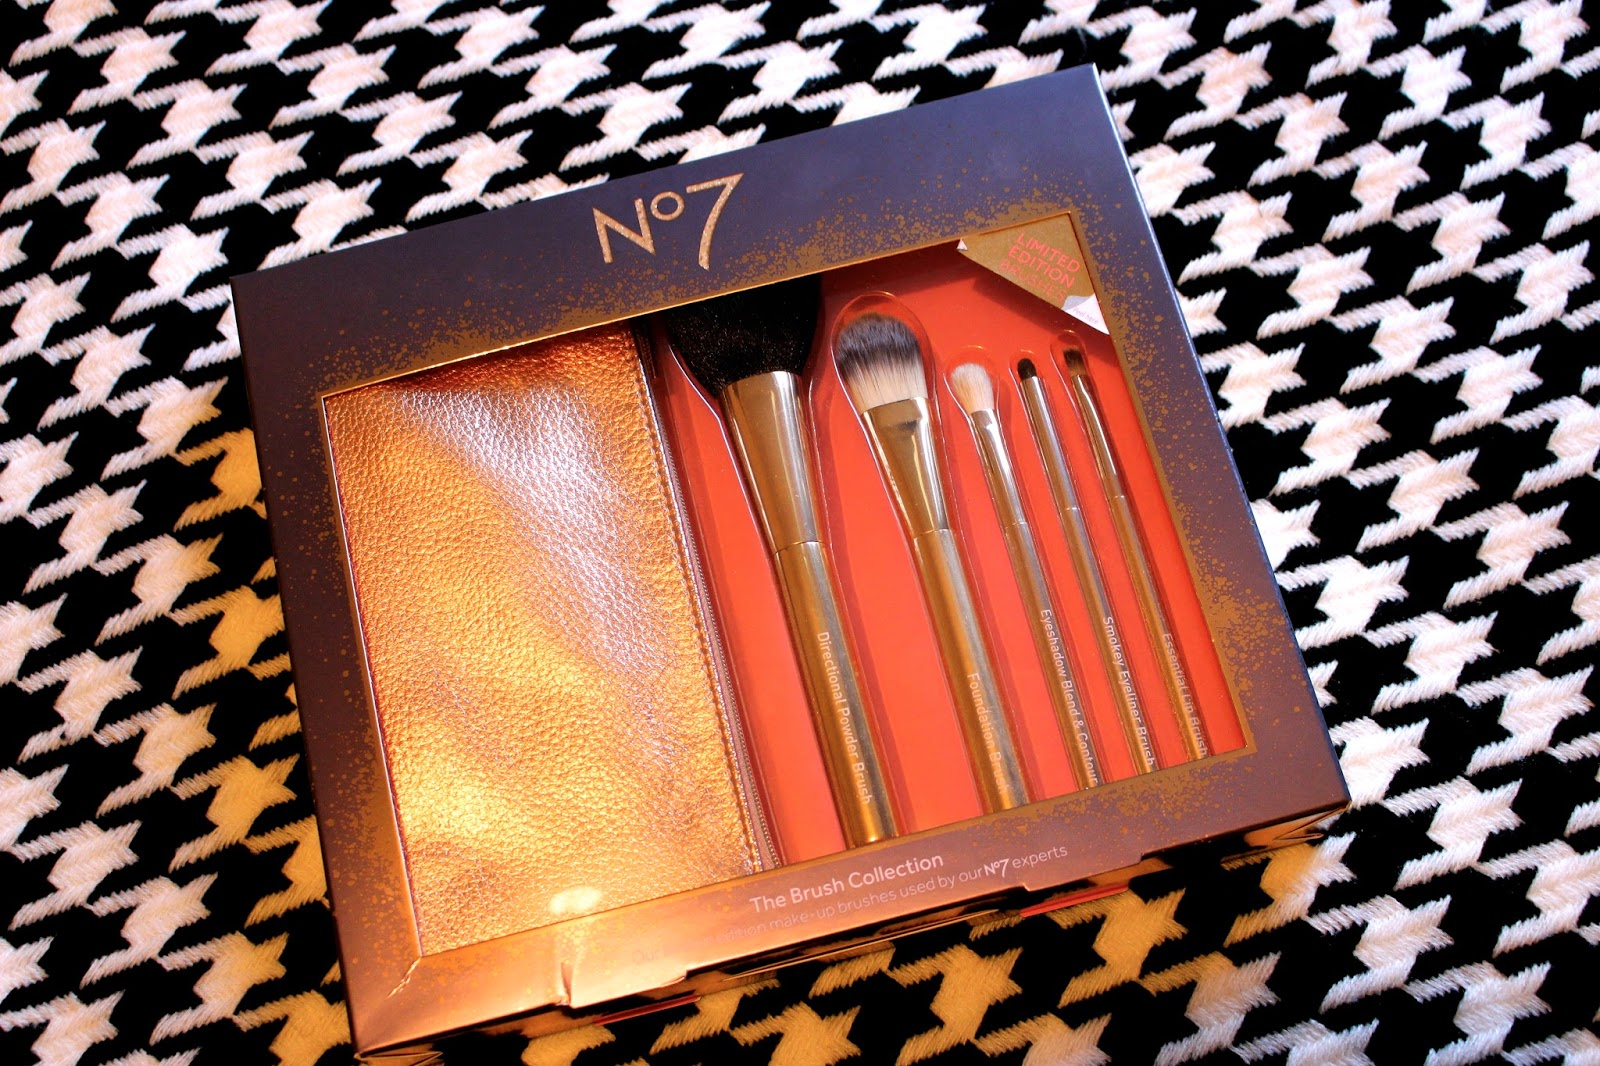 No7 Brush Collection